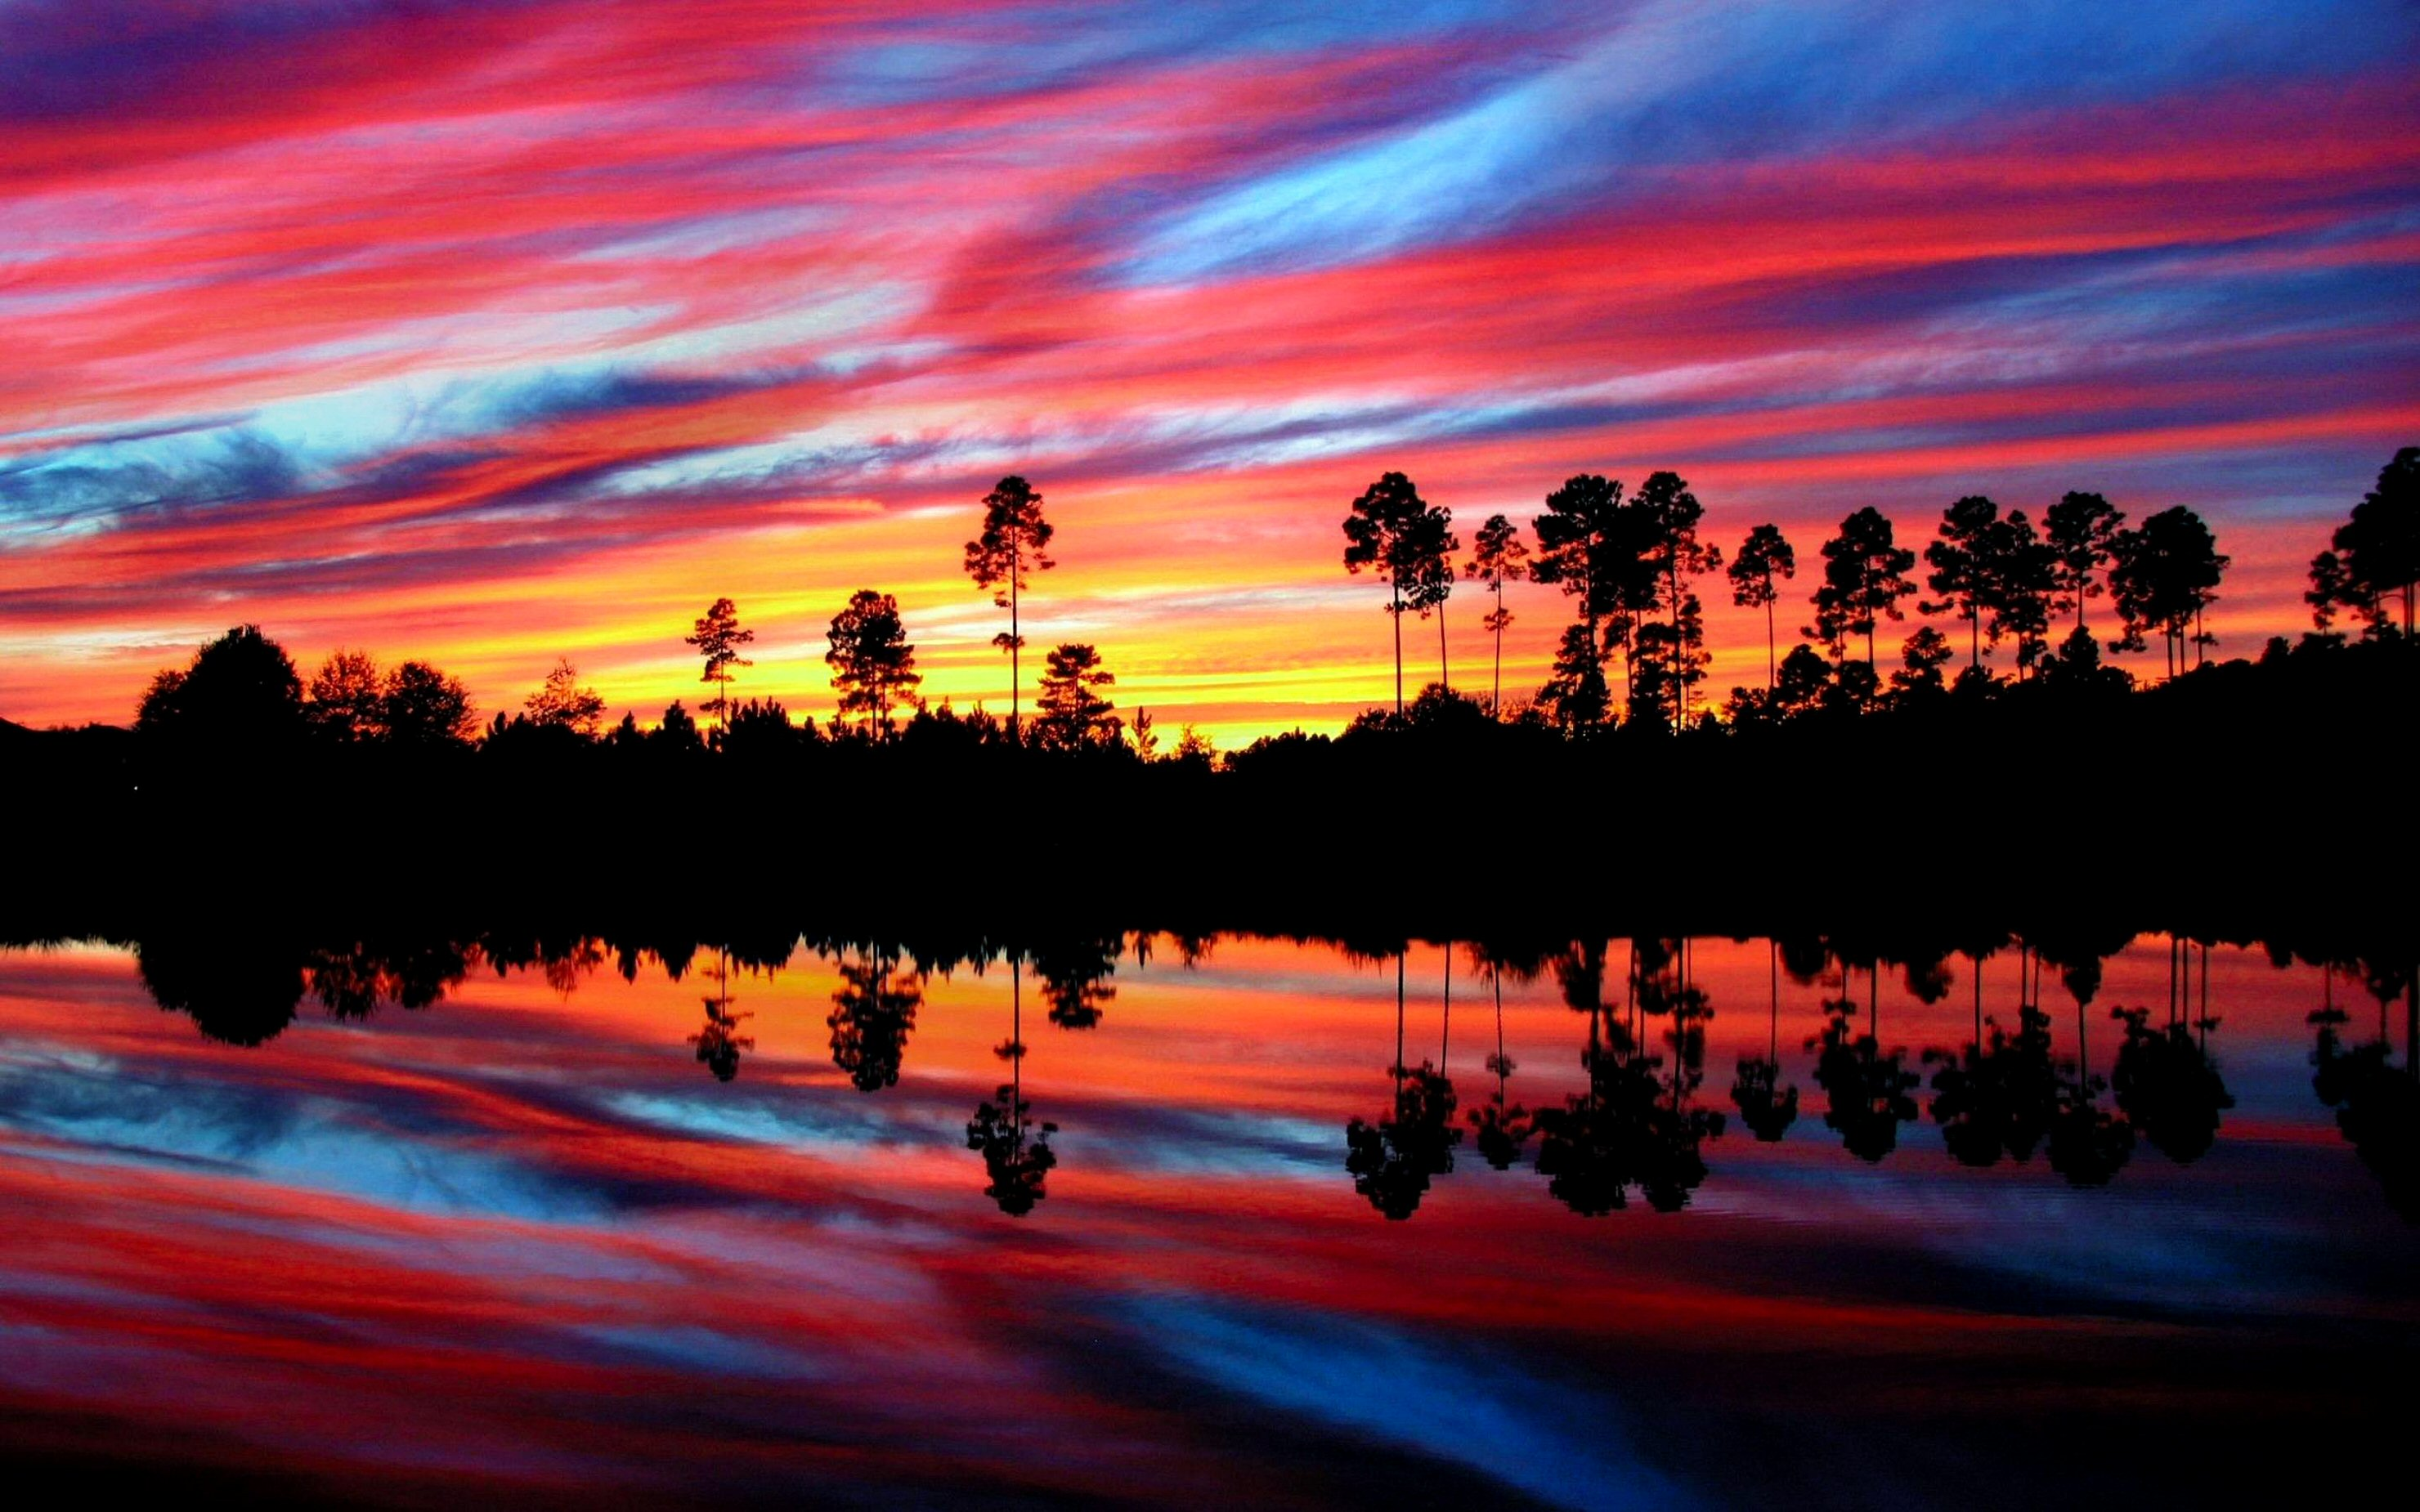 sunset reflection wallpaper1